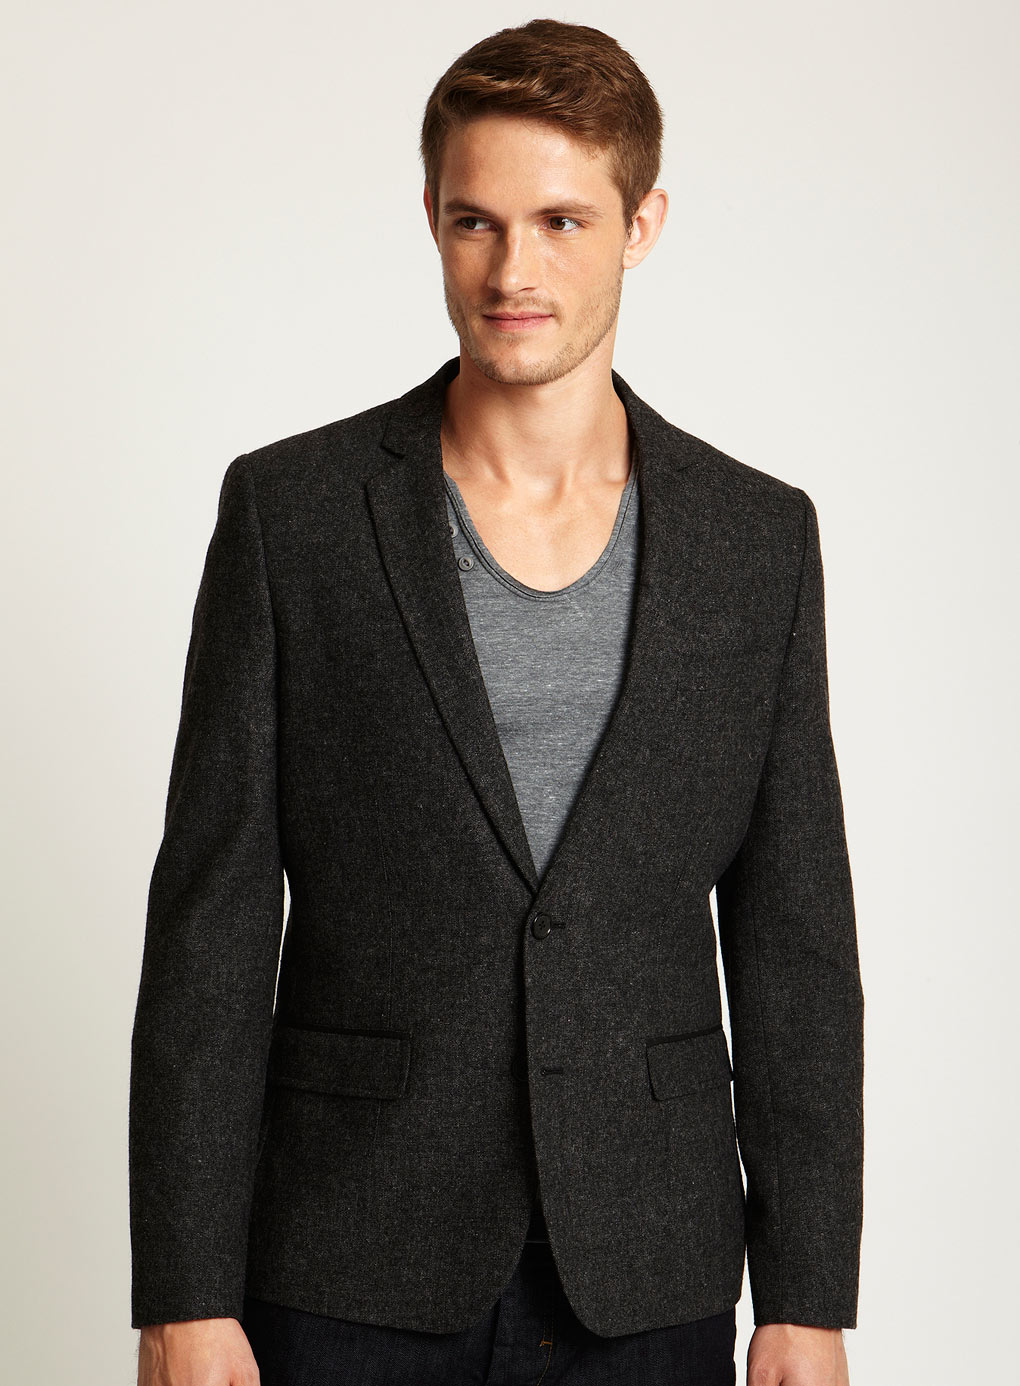 Student looking to buy a casual jacket/sport coat